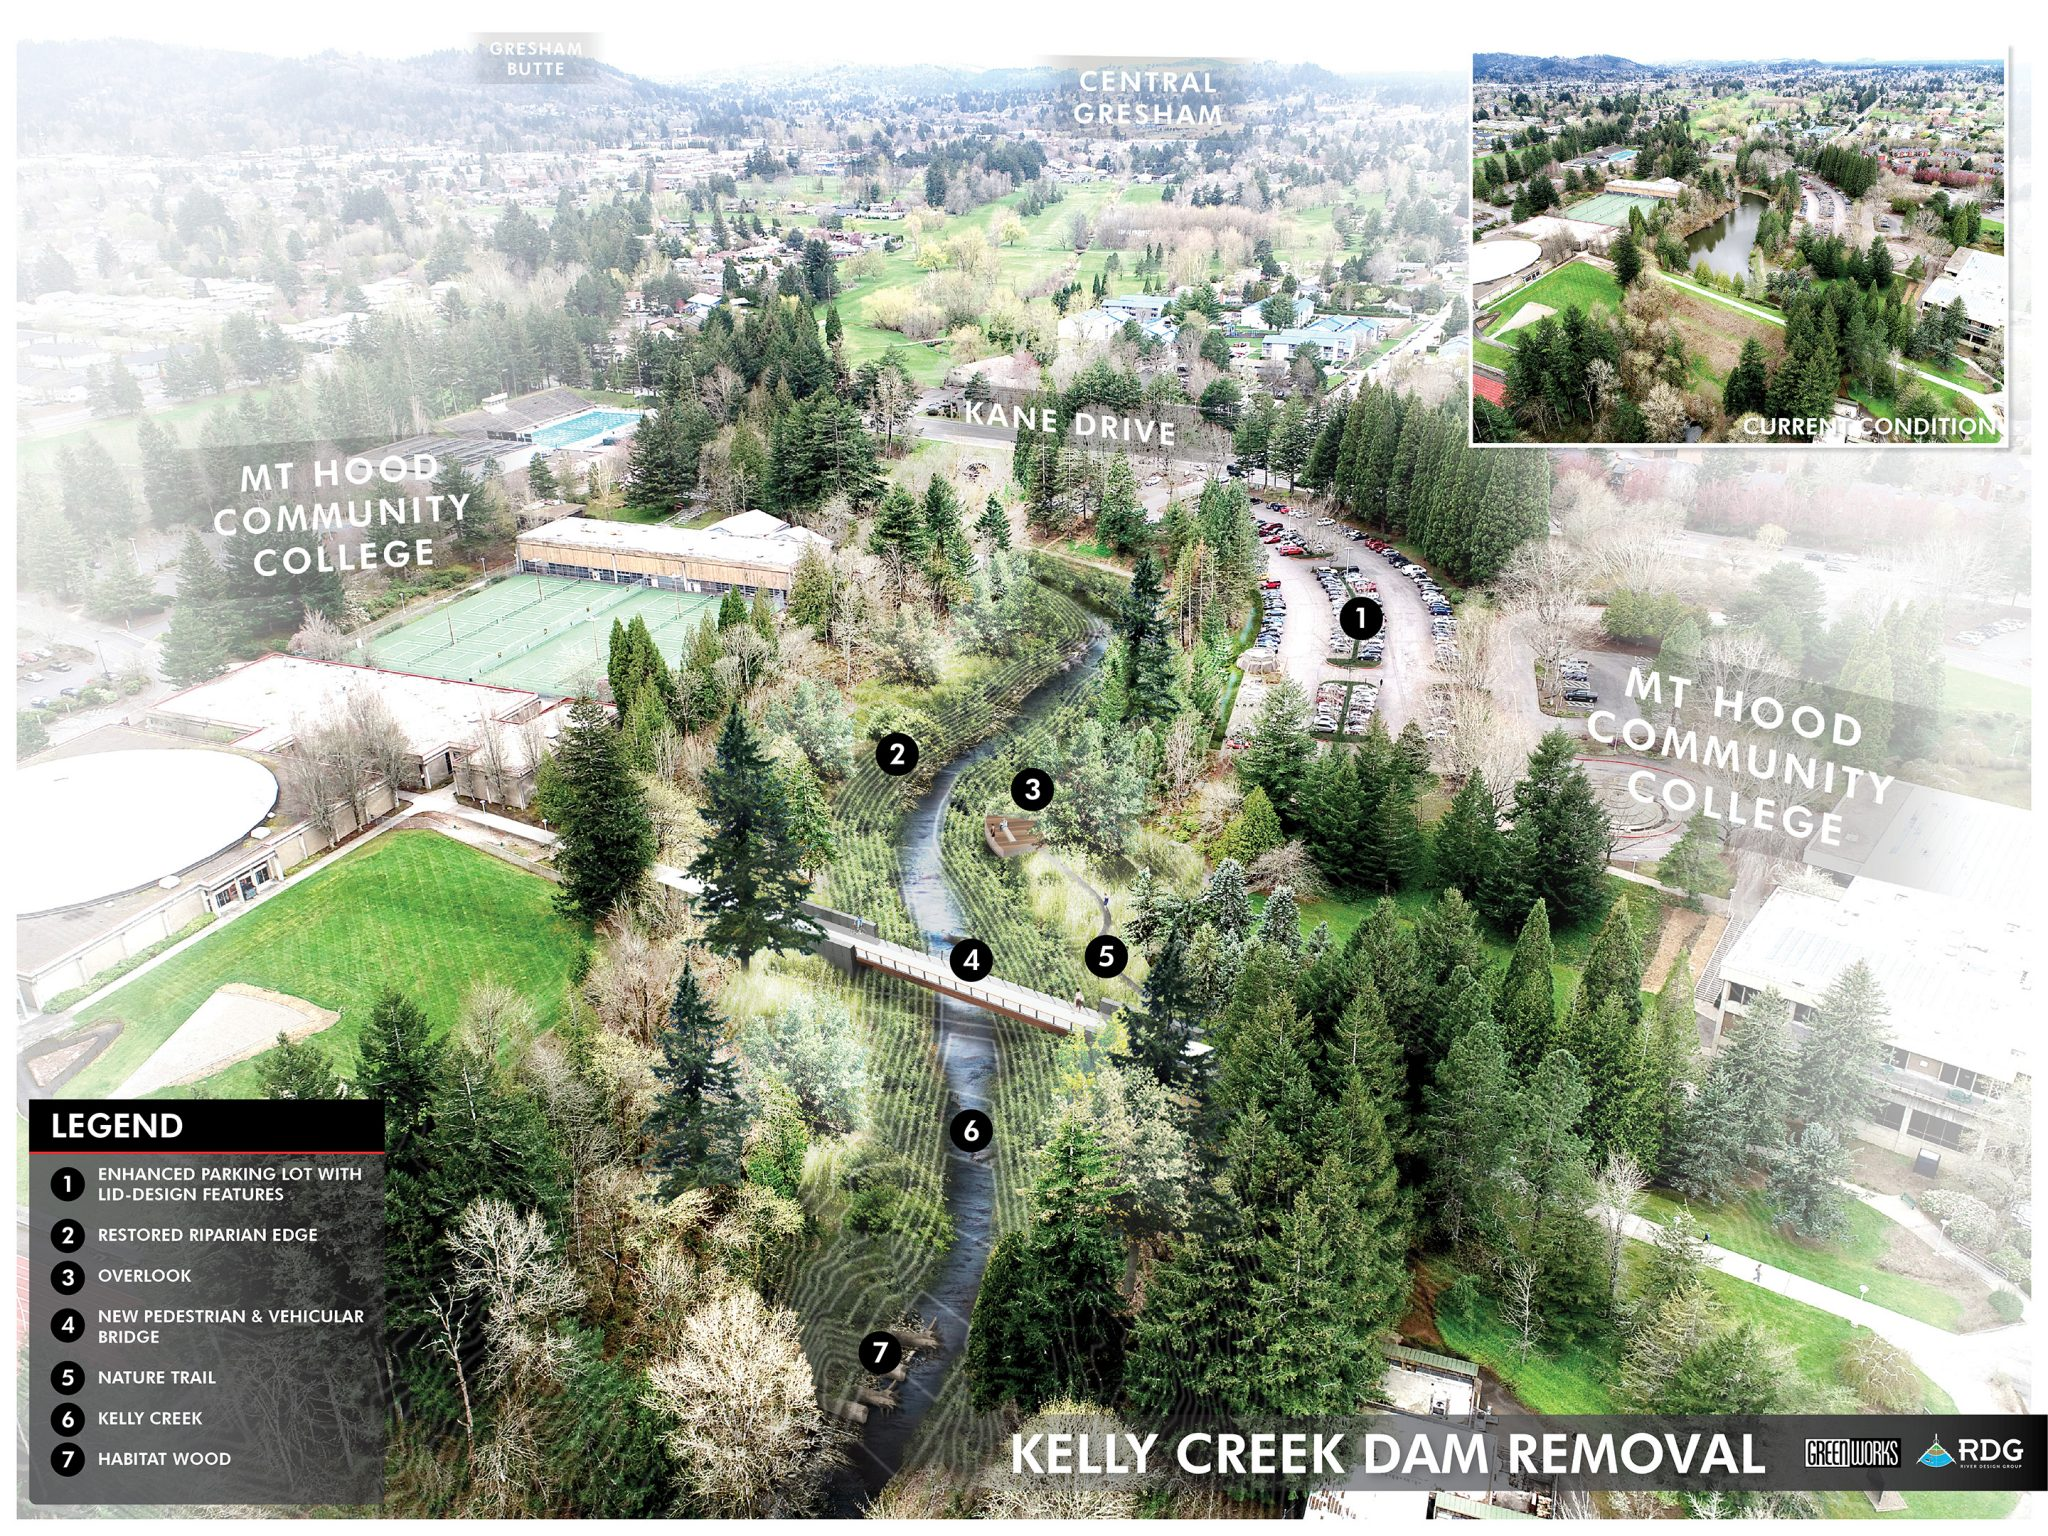 Kelly Creek Dam Removed Illustration MHCC